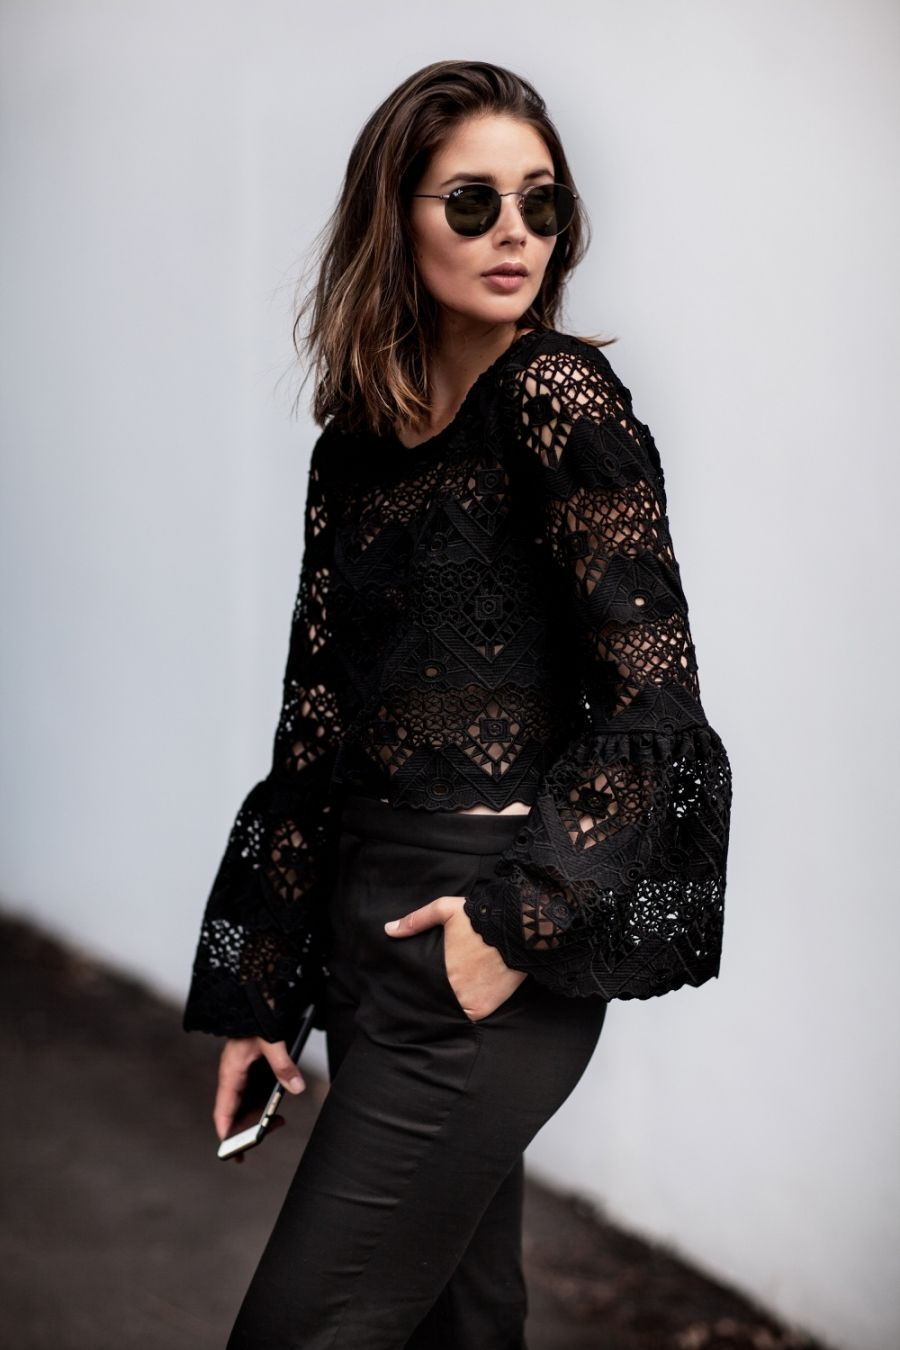 How To Wear Black Lace Shirt